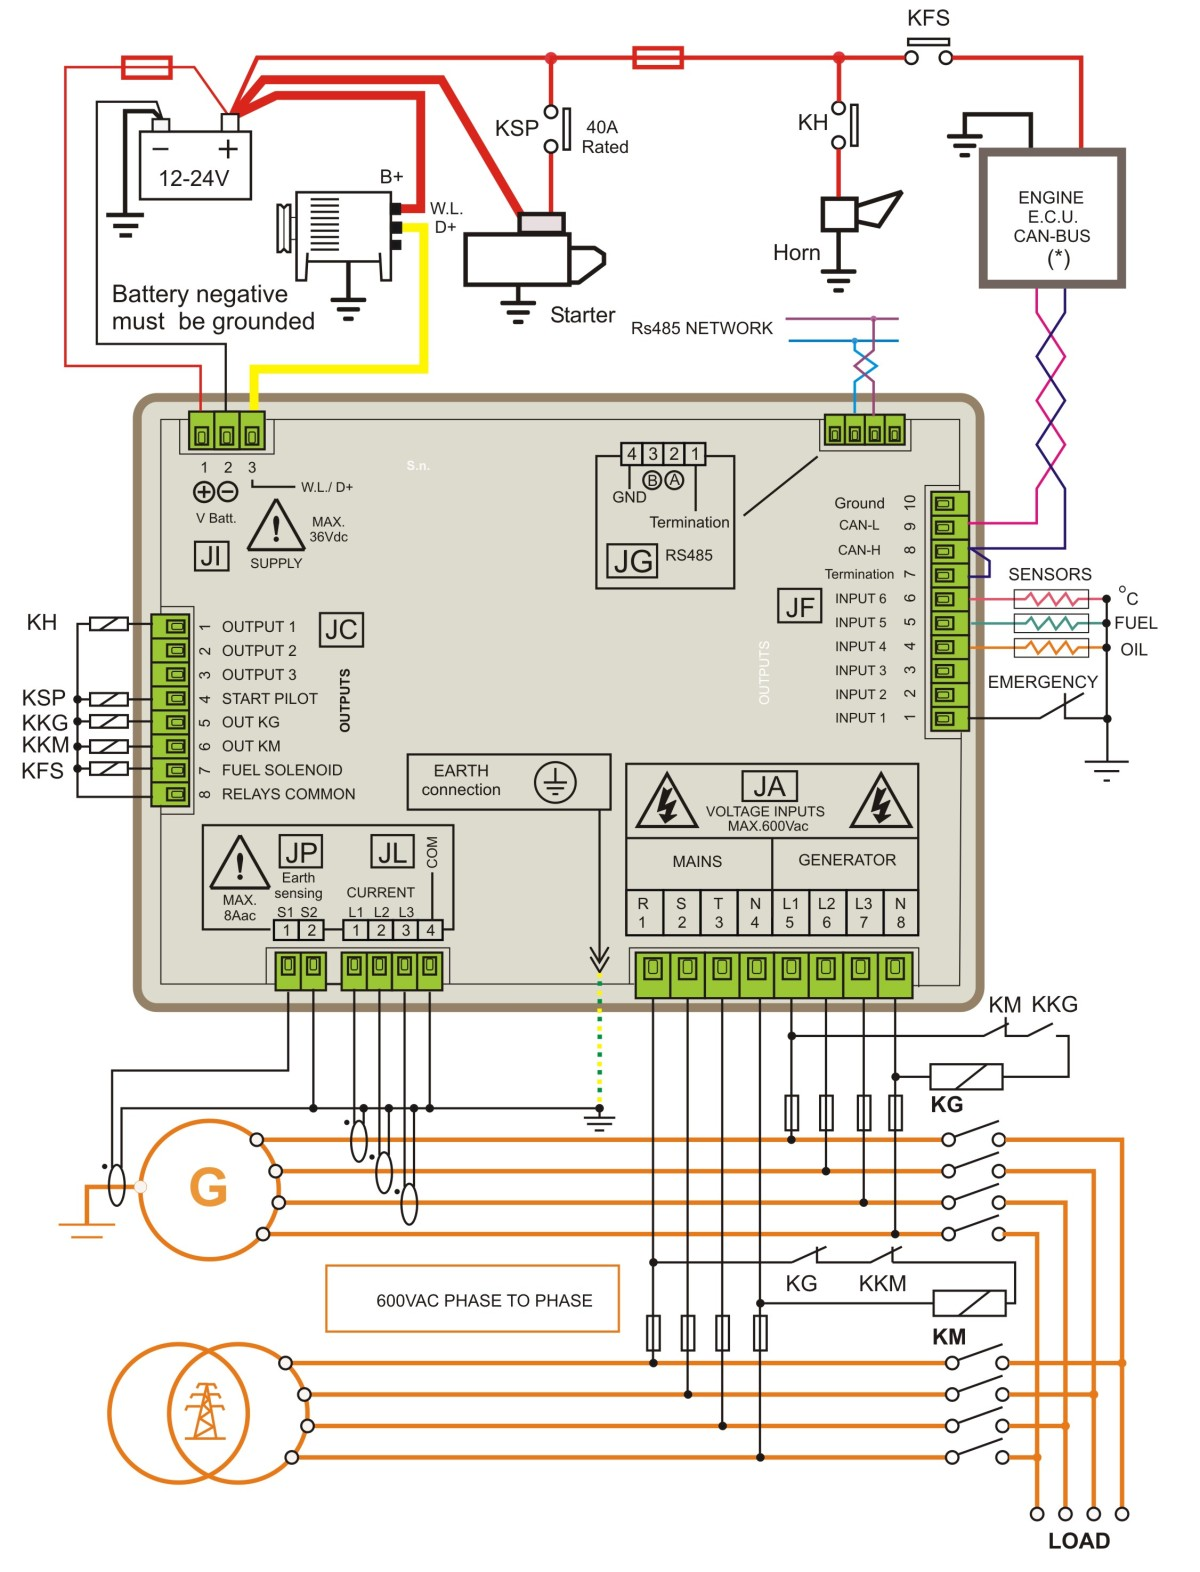 Diesel Generator Control Panel Wiring Diagram BeK3 e1450881313642 wiring diagram generator readingrat net newage stamford generator wiring diagram at reclaimingppi.co